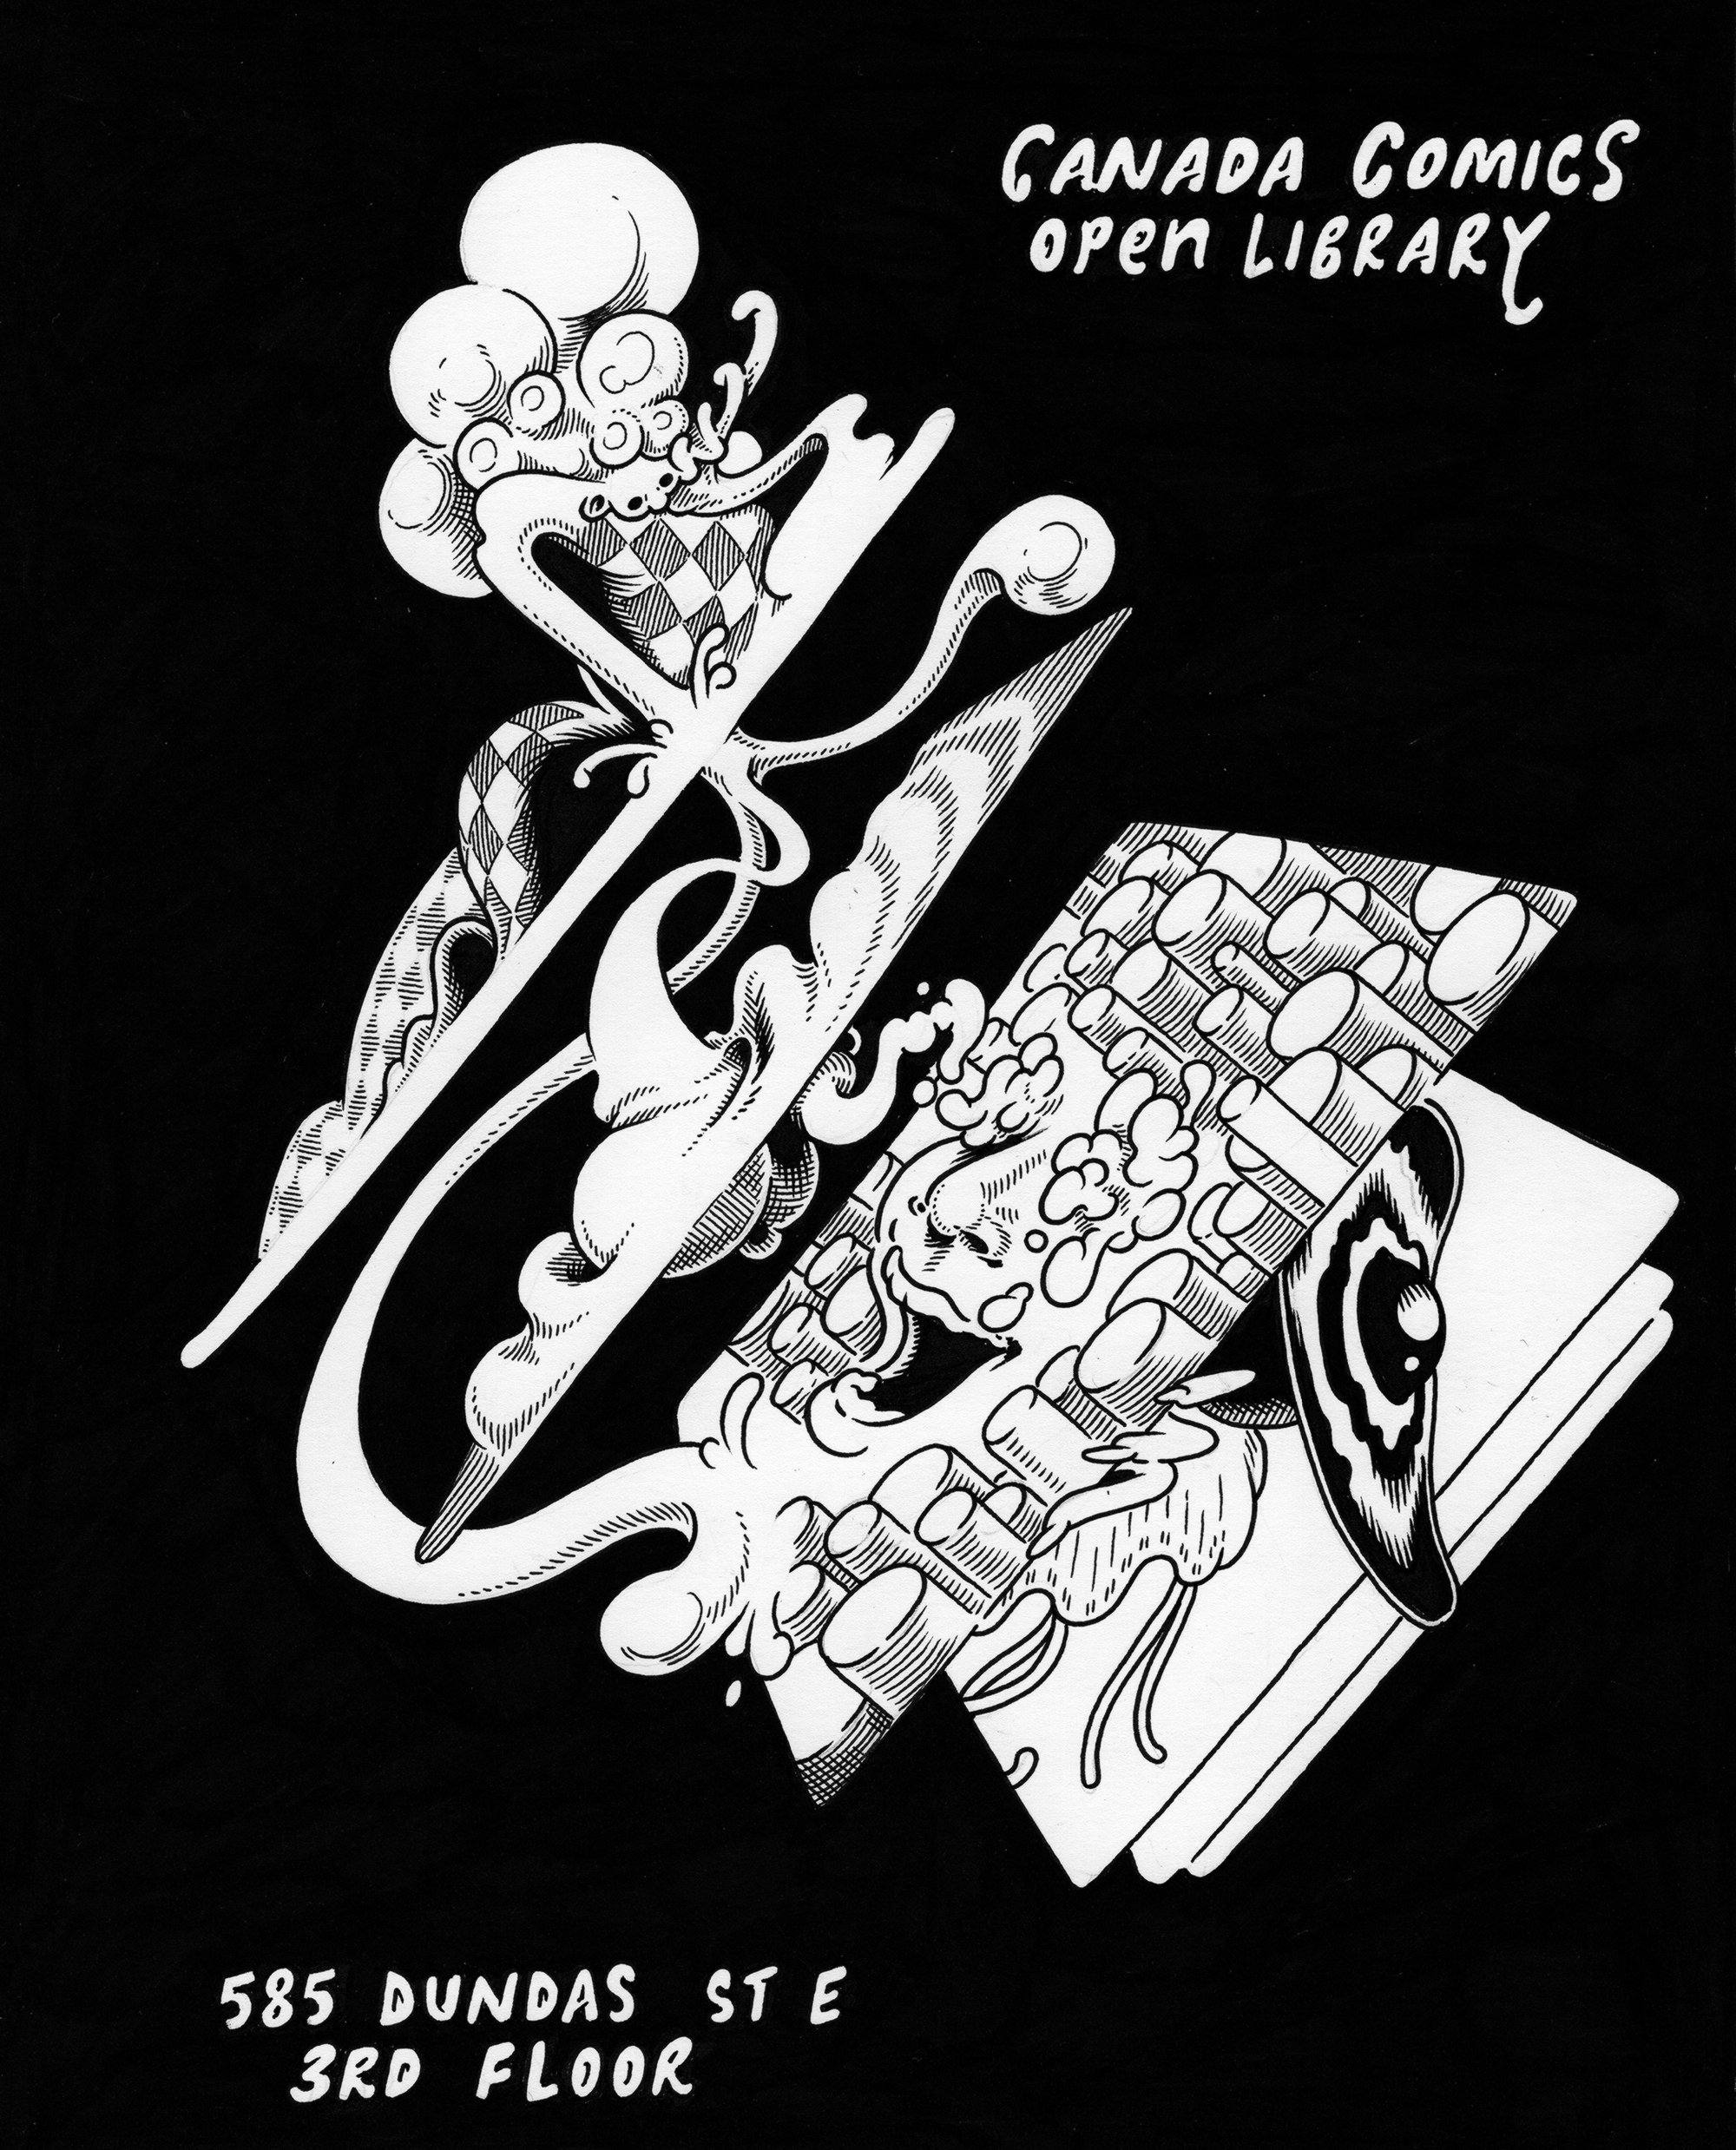 Canada Comics Open Library poster by Eric Kostiuk Williams